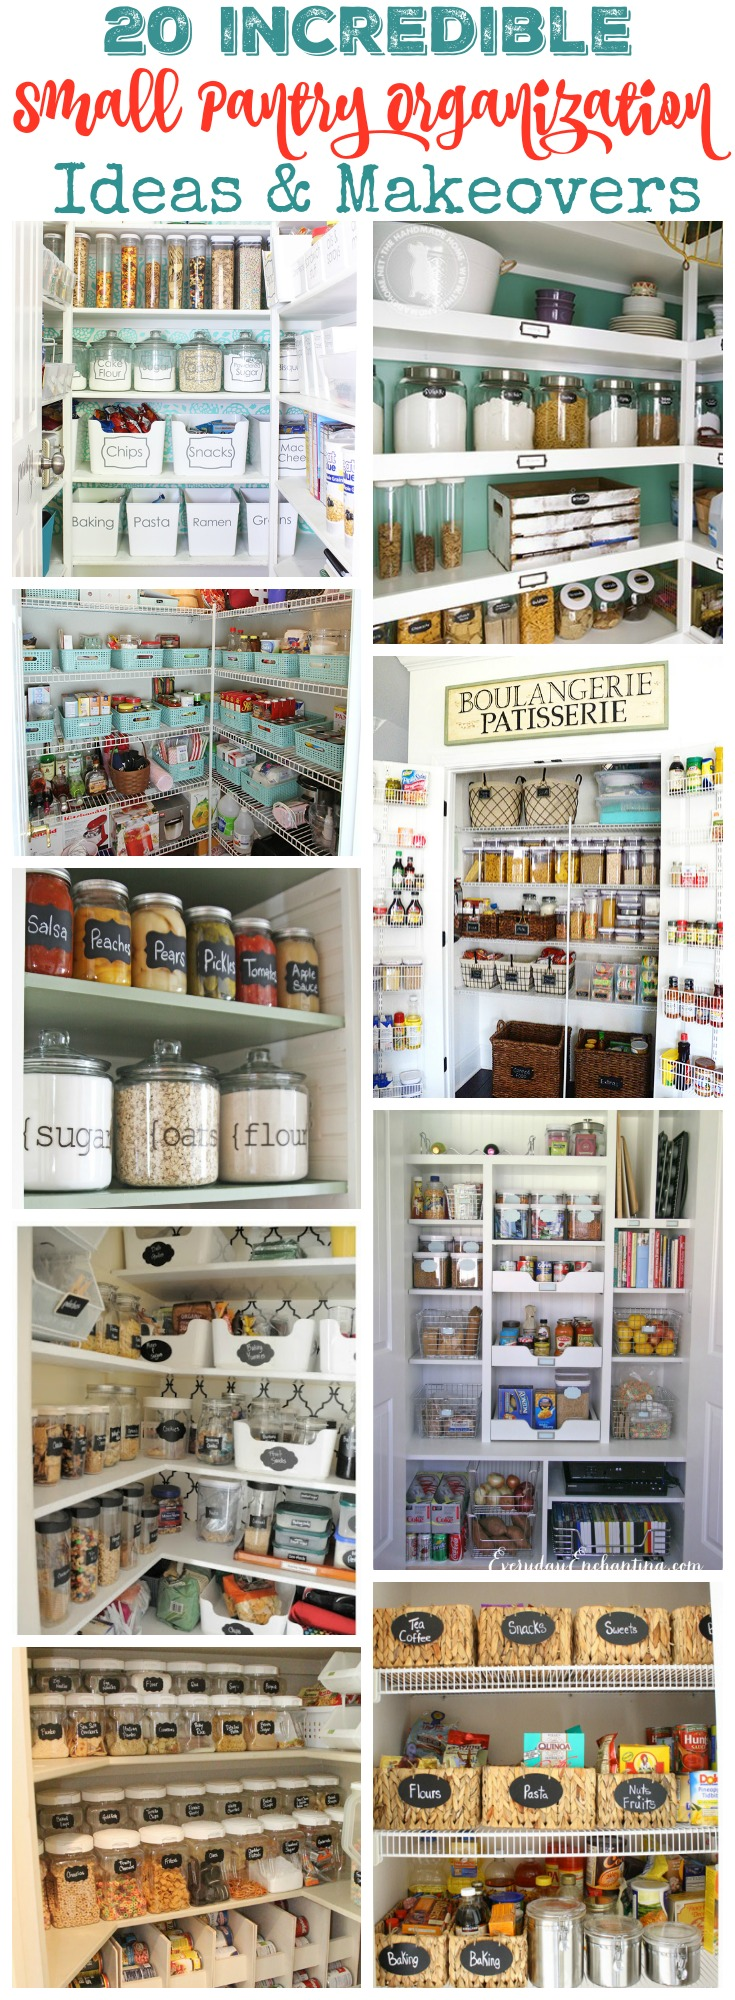 20 incredible small pantry organization ideas and makeovers kitchen organization ideas 20 Incredible Small Pantry Ideas Makeovers at thehappyhousie com